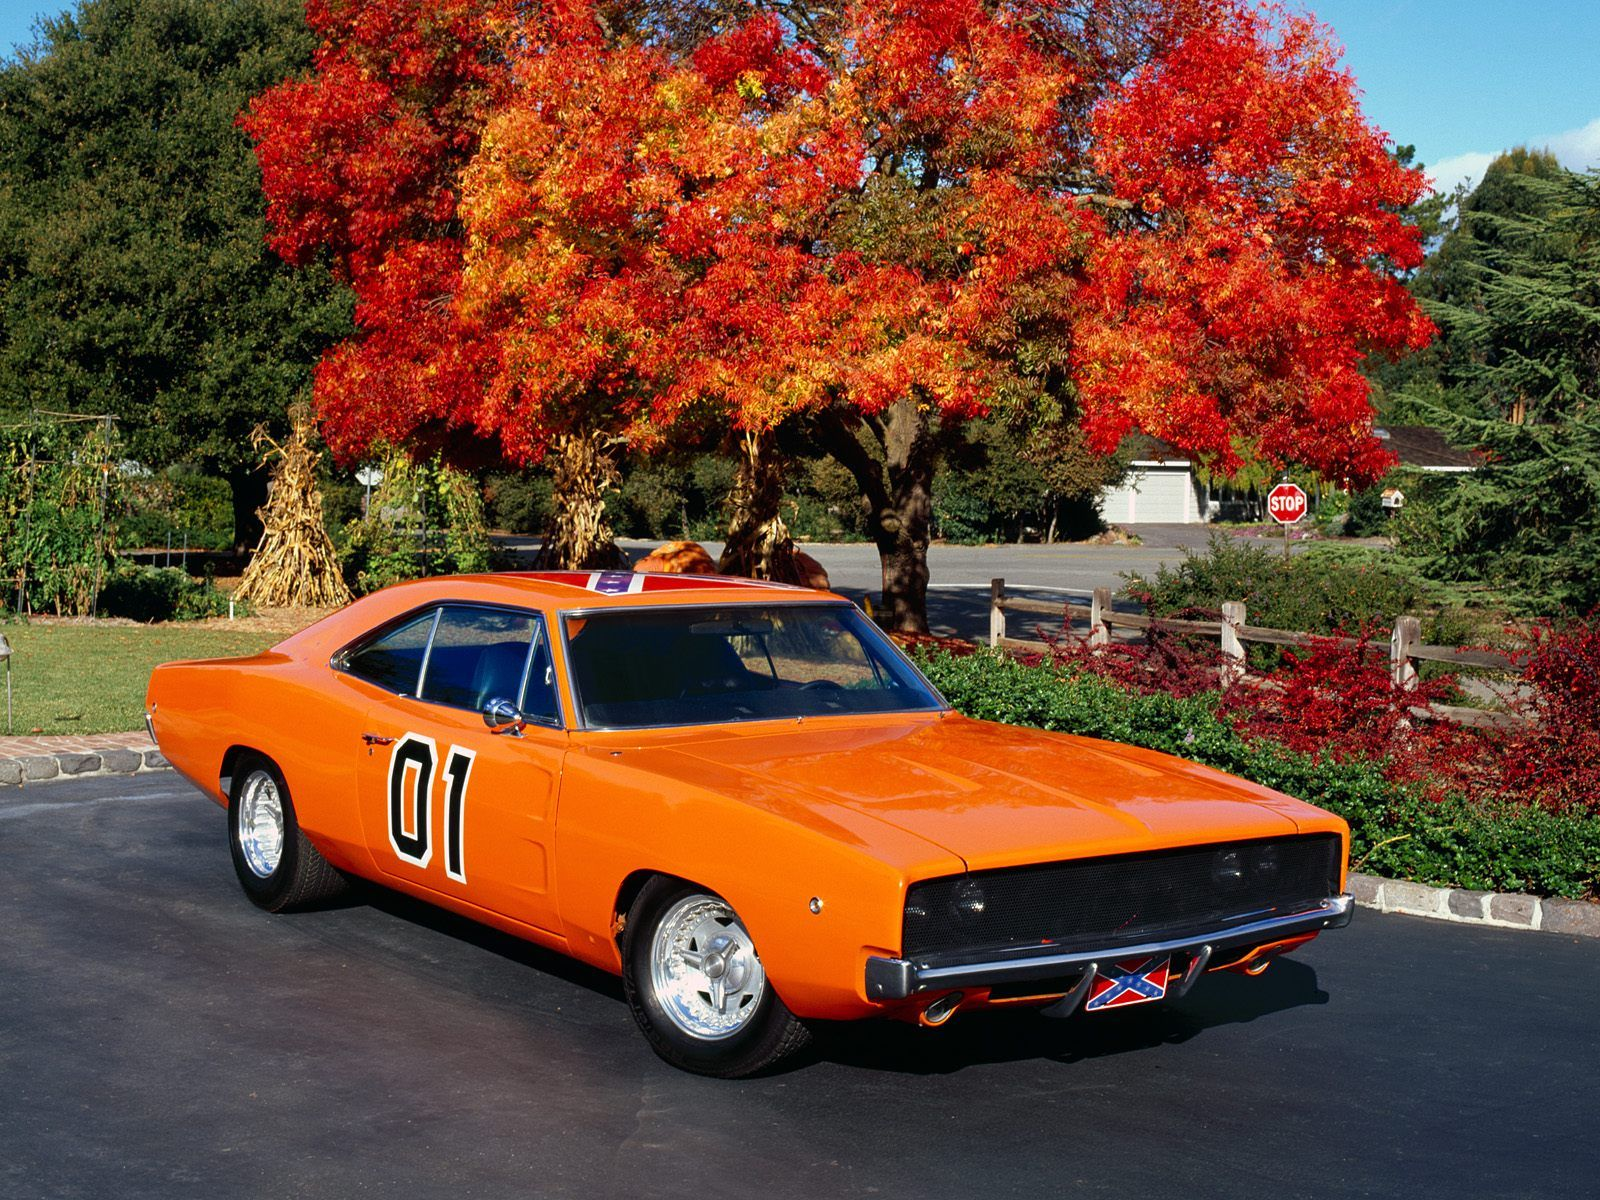 Girls And Muscle Cars Wallpaper Download This Wallpaper Use For